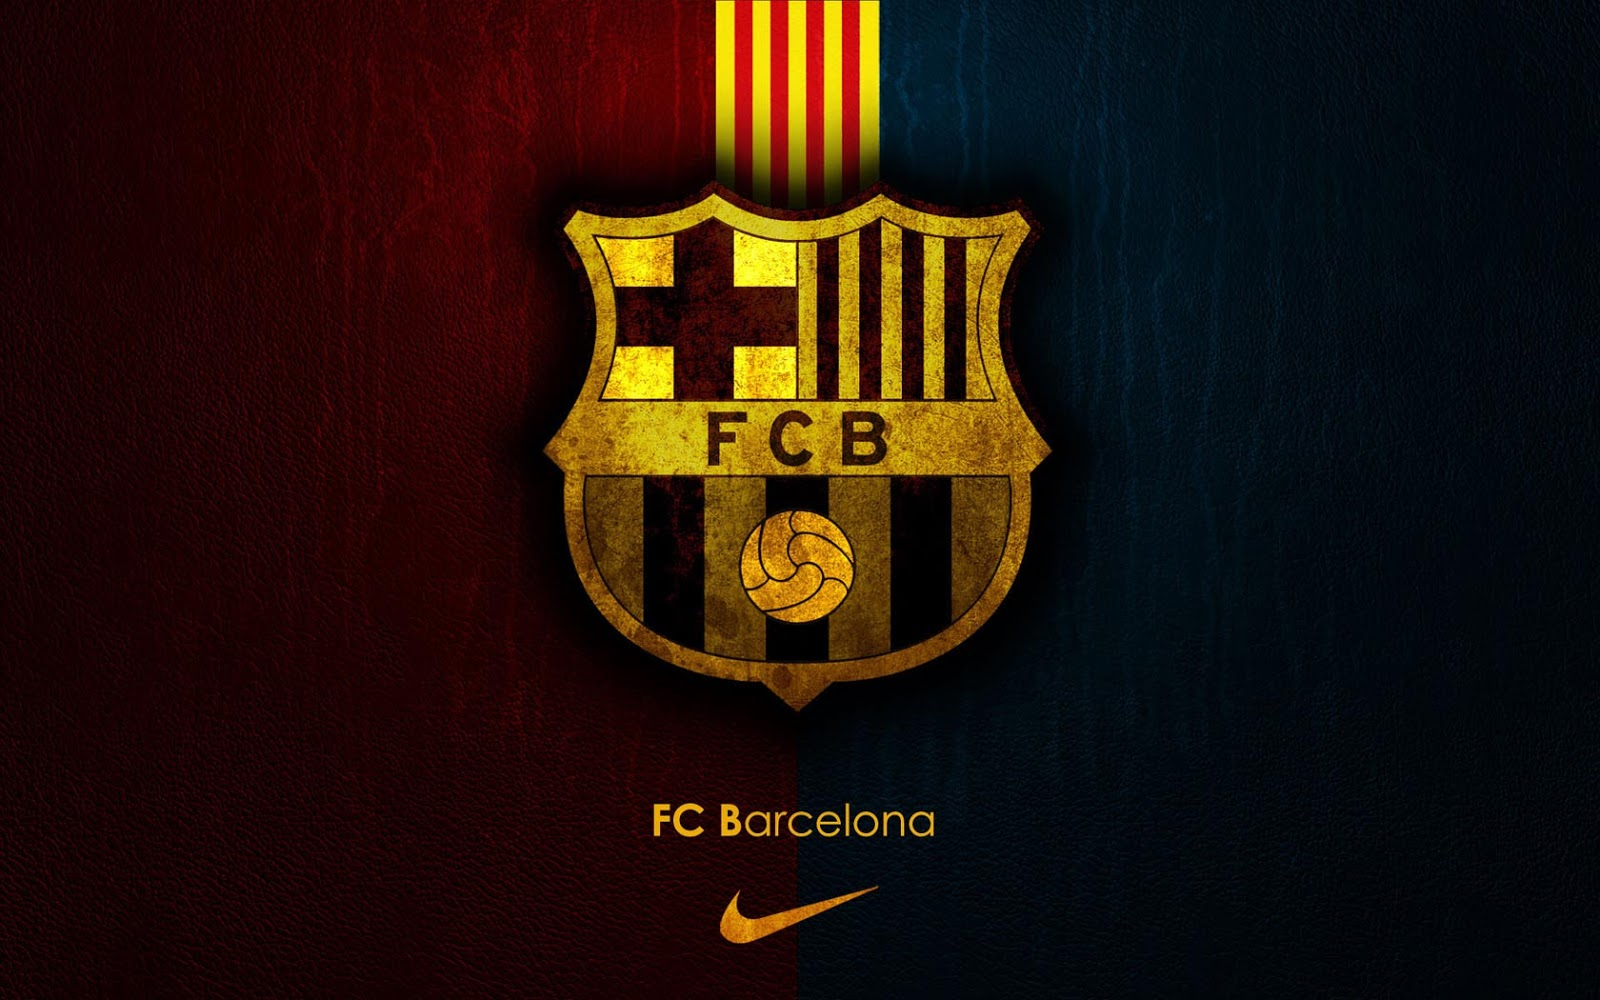 http://2.bp.blogspot.com/-548A-DZamv4/UPElCit9q-I/AAAAAAAAFkk/DY23IP7GuLU/s1600/FC+Barcelona+Team+Cool+HD+Wallpapers+2013_5.jpg